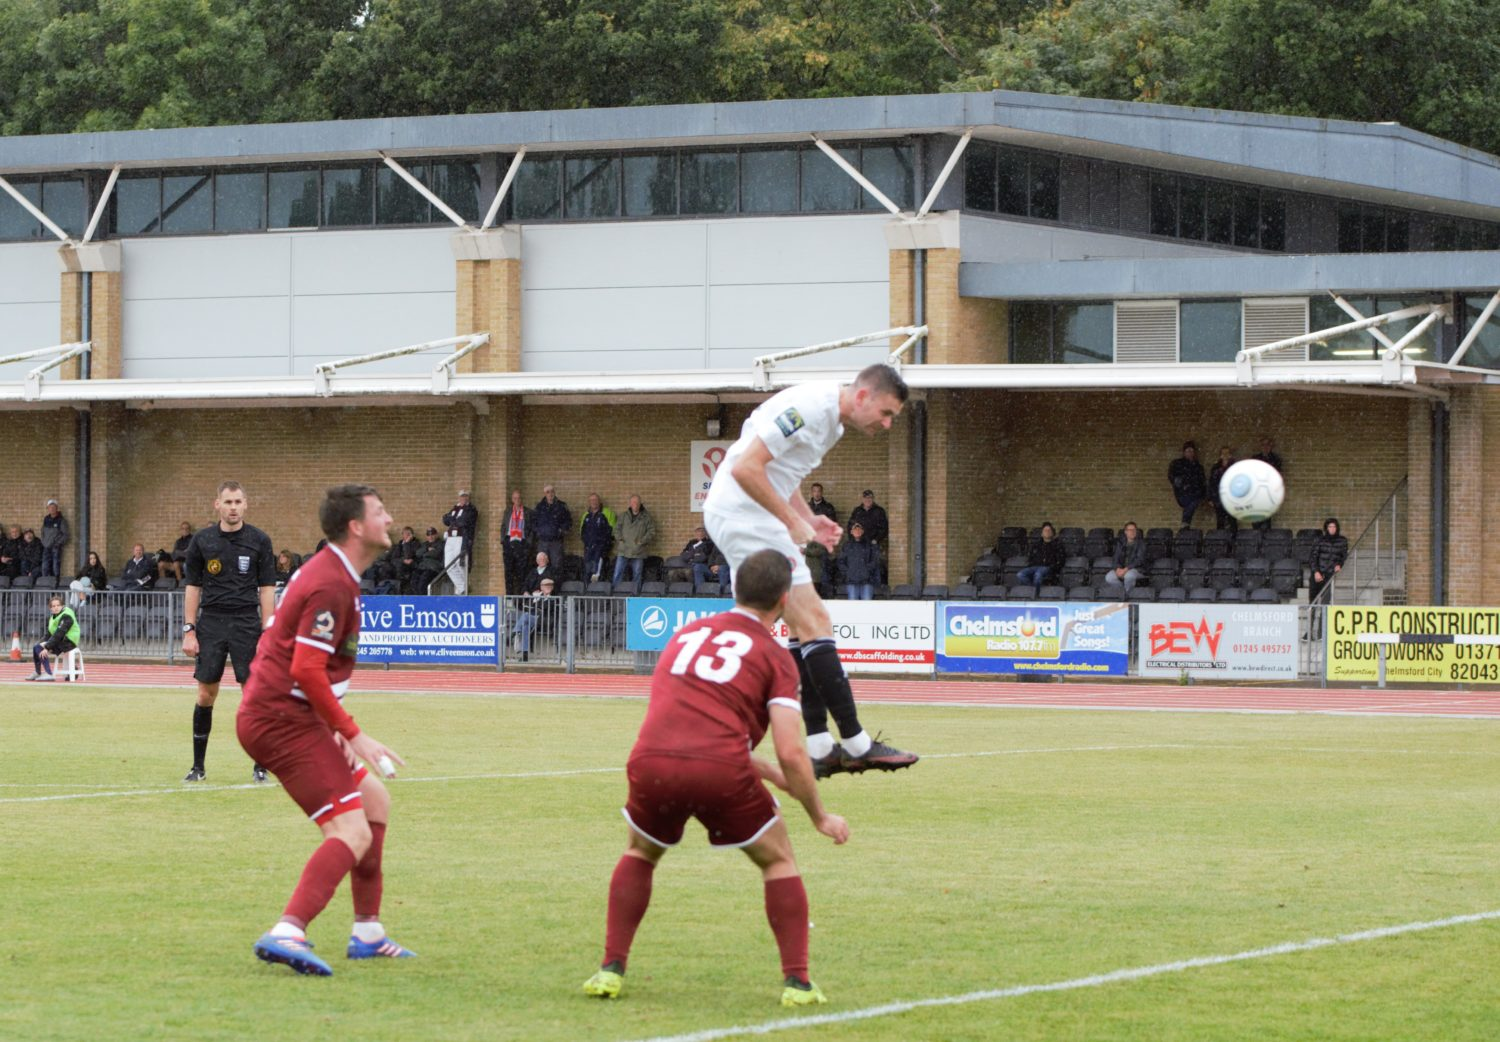 HIGHTLIGHTS: Chelmsford City 1-2 Worthing [A] – FA Cup